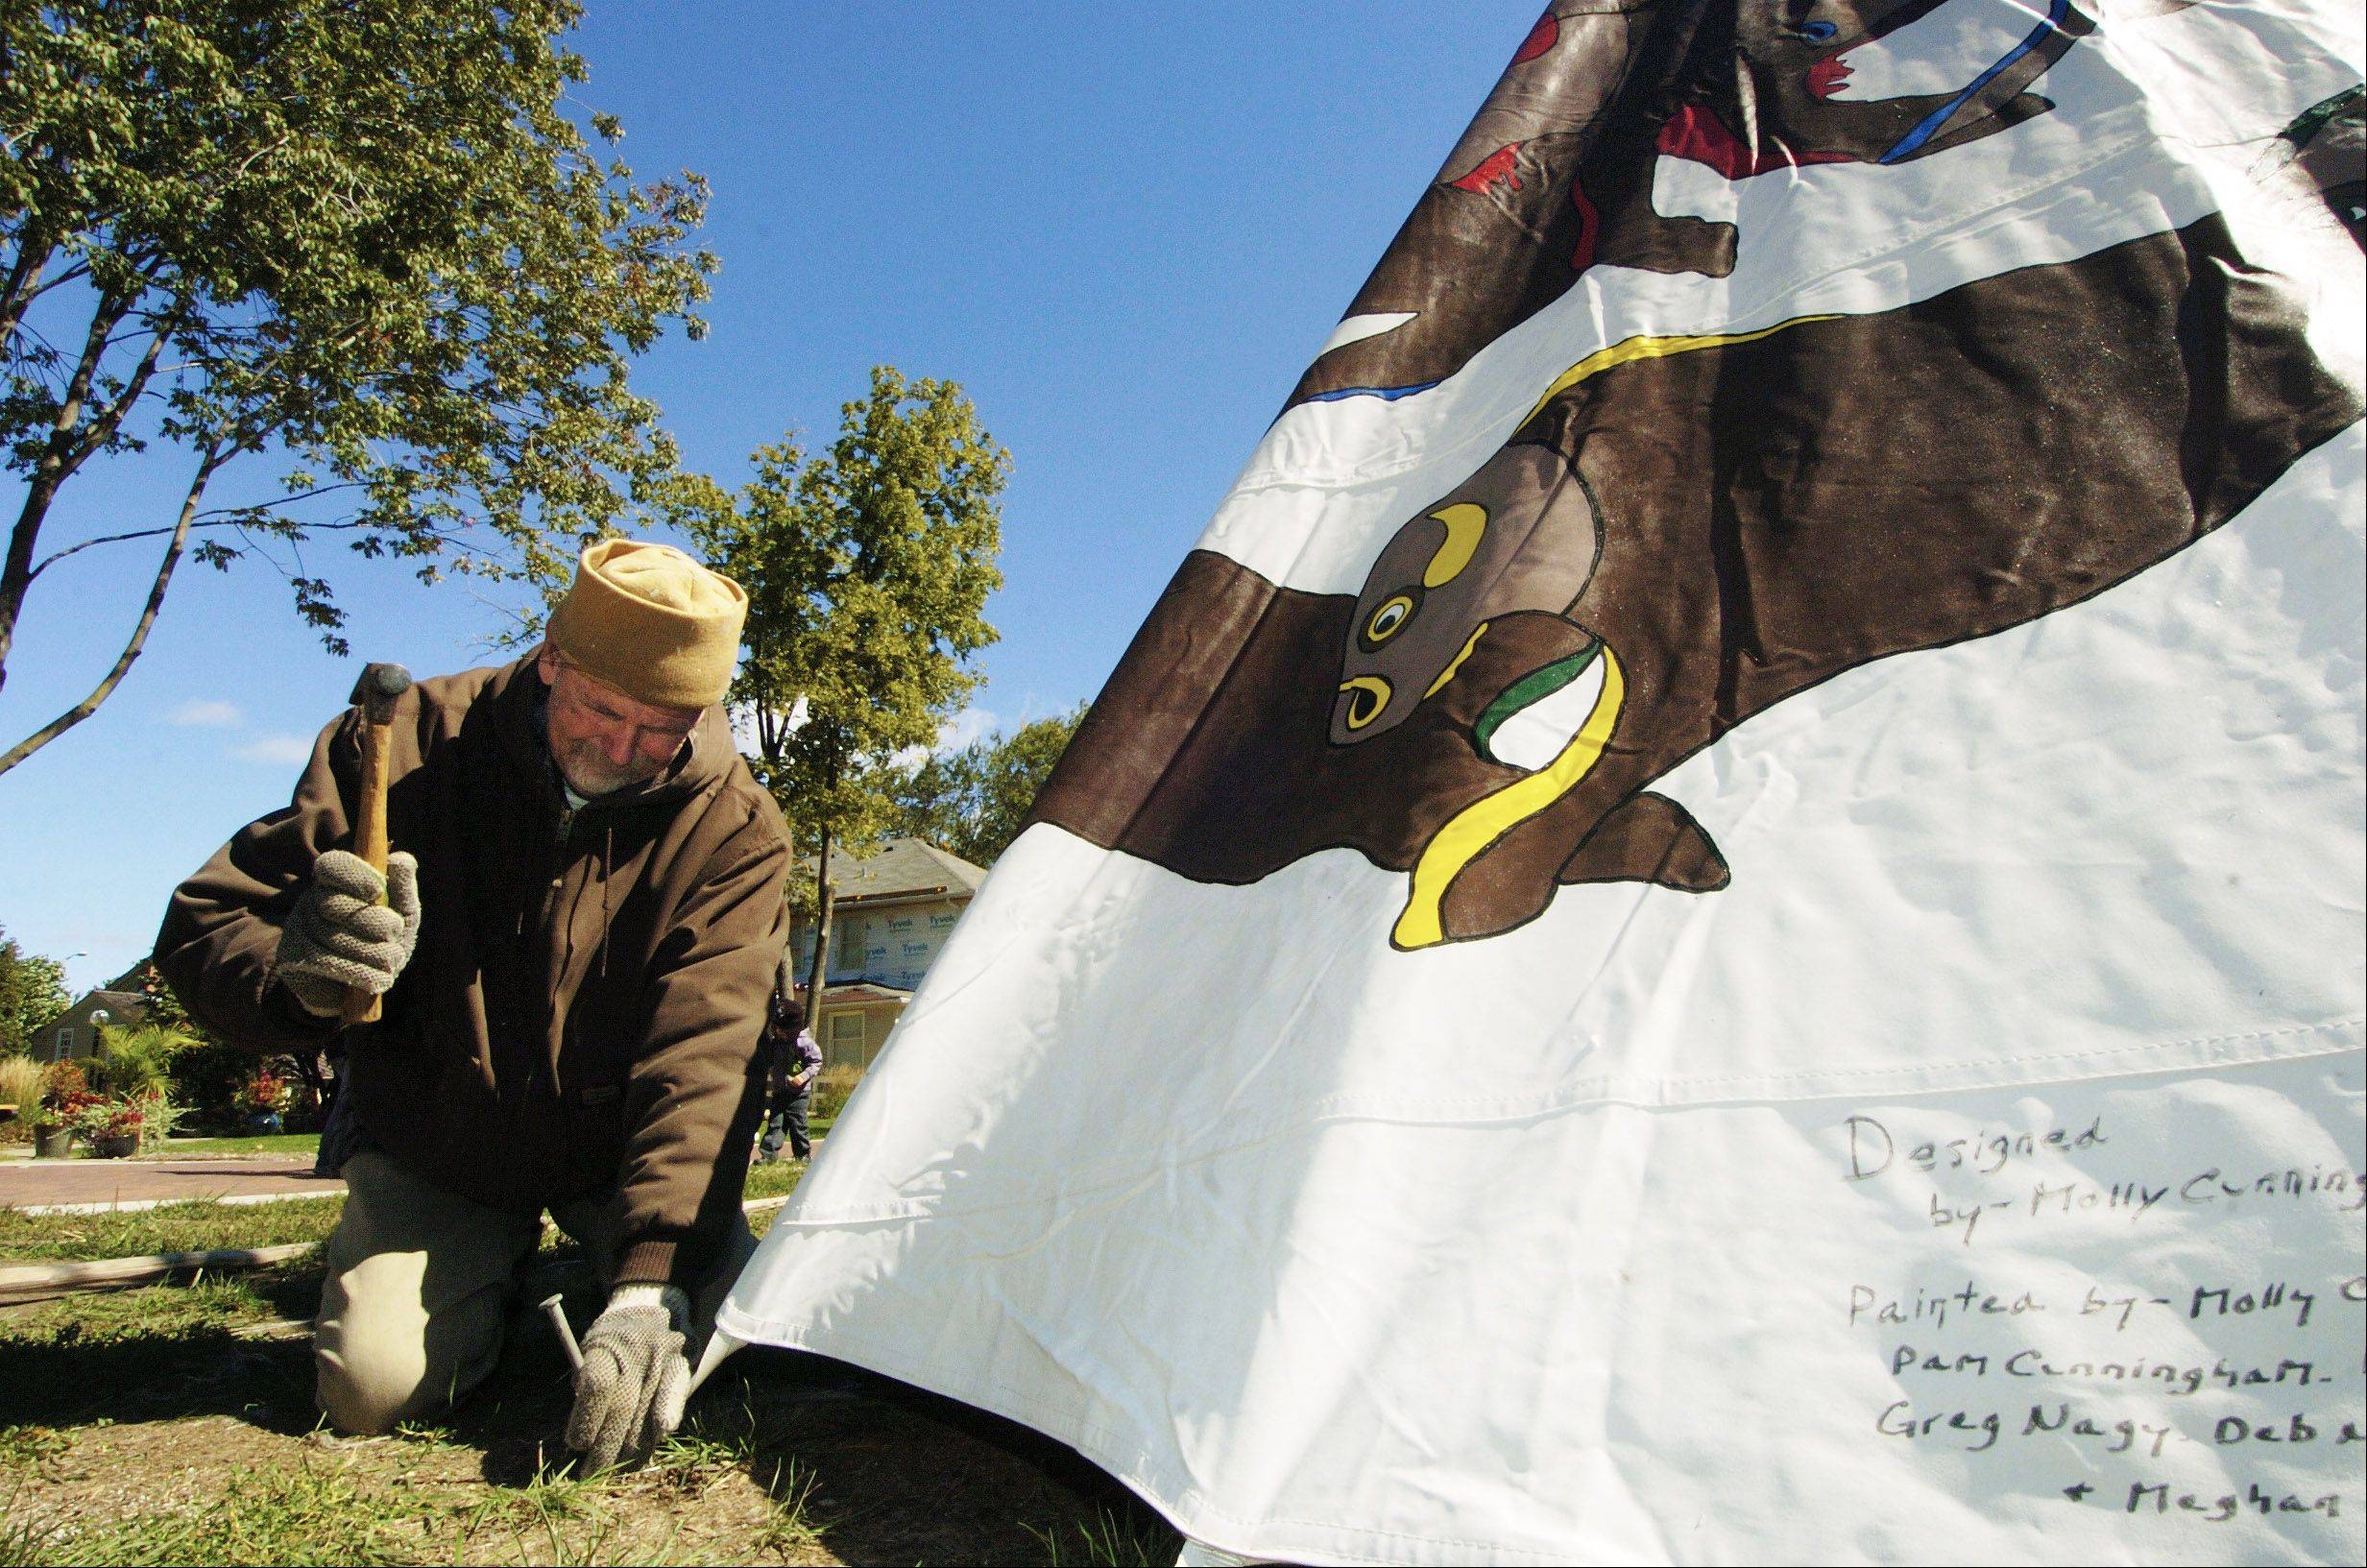 Gregg Walkstall of Chicago hammers stakes for a teepee during Saturday's annual Harvest Pow Wow at the Naper Settlement in Naperville.